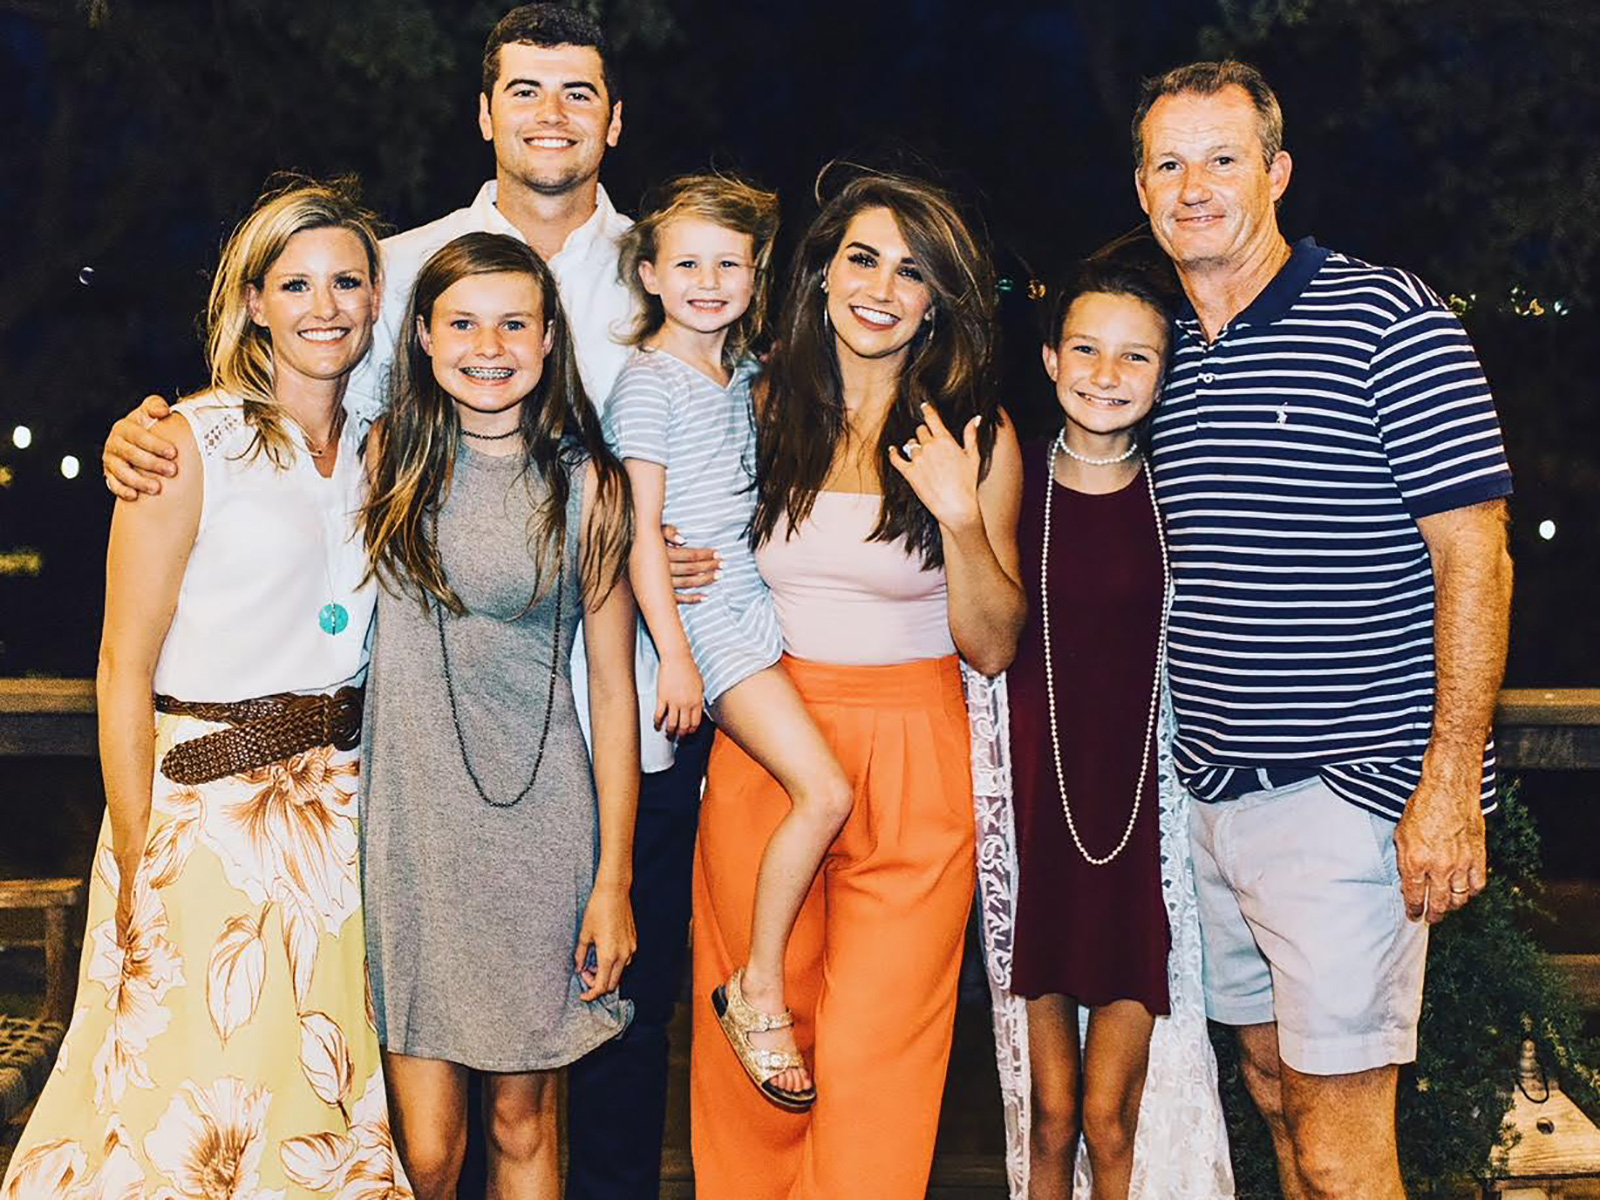 Stidham with his fiancée Kennedy Brown (in orange pants) and the Copelands (from left: Katy, Kalen, Larsen, Marin and Matt).